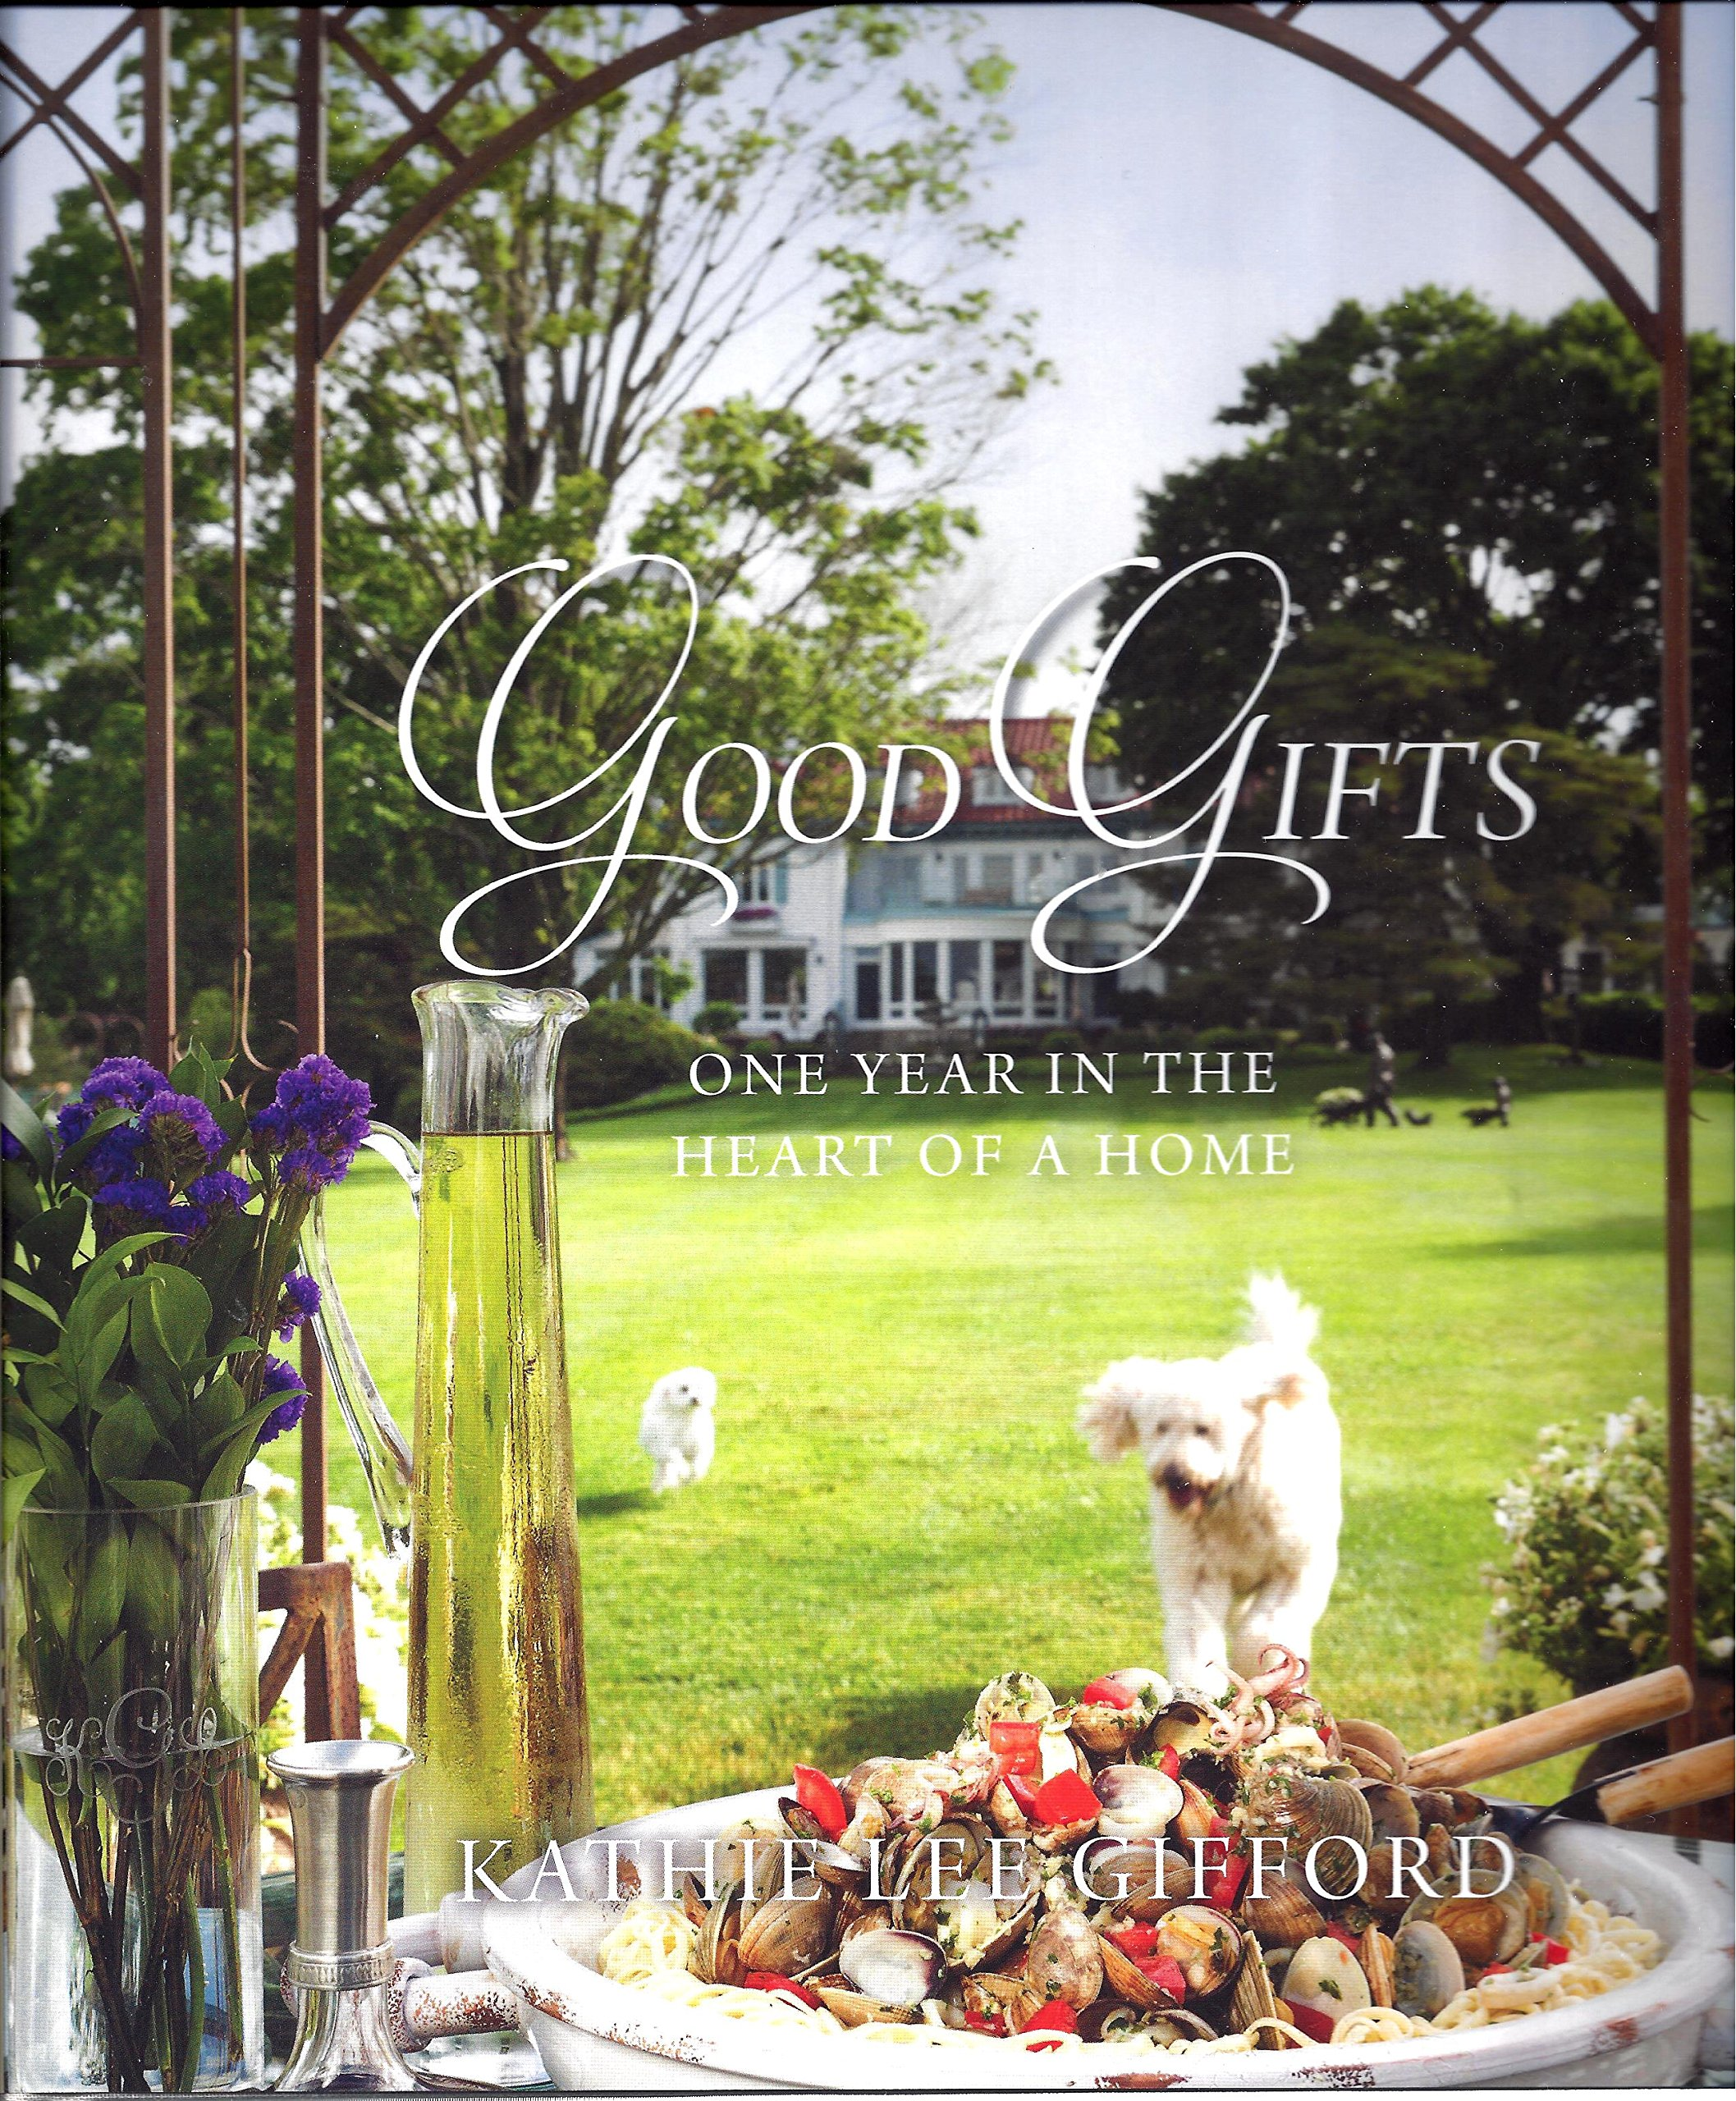 good gifts a year in the heart of a home kathie lee gifford good gifts a year in the heart of a home kathie lee gifford 9780692260906 amazon com books